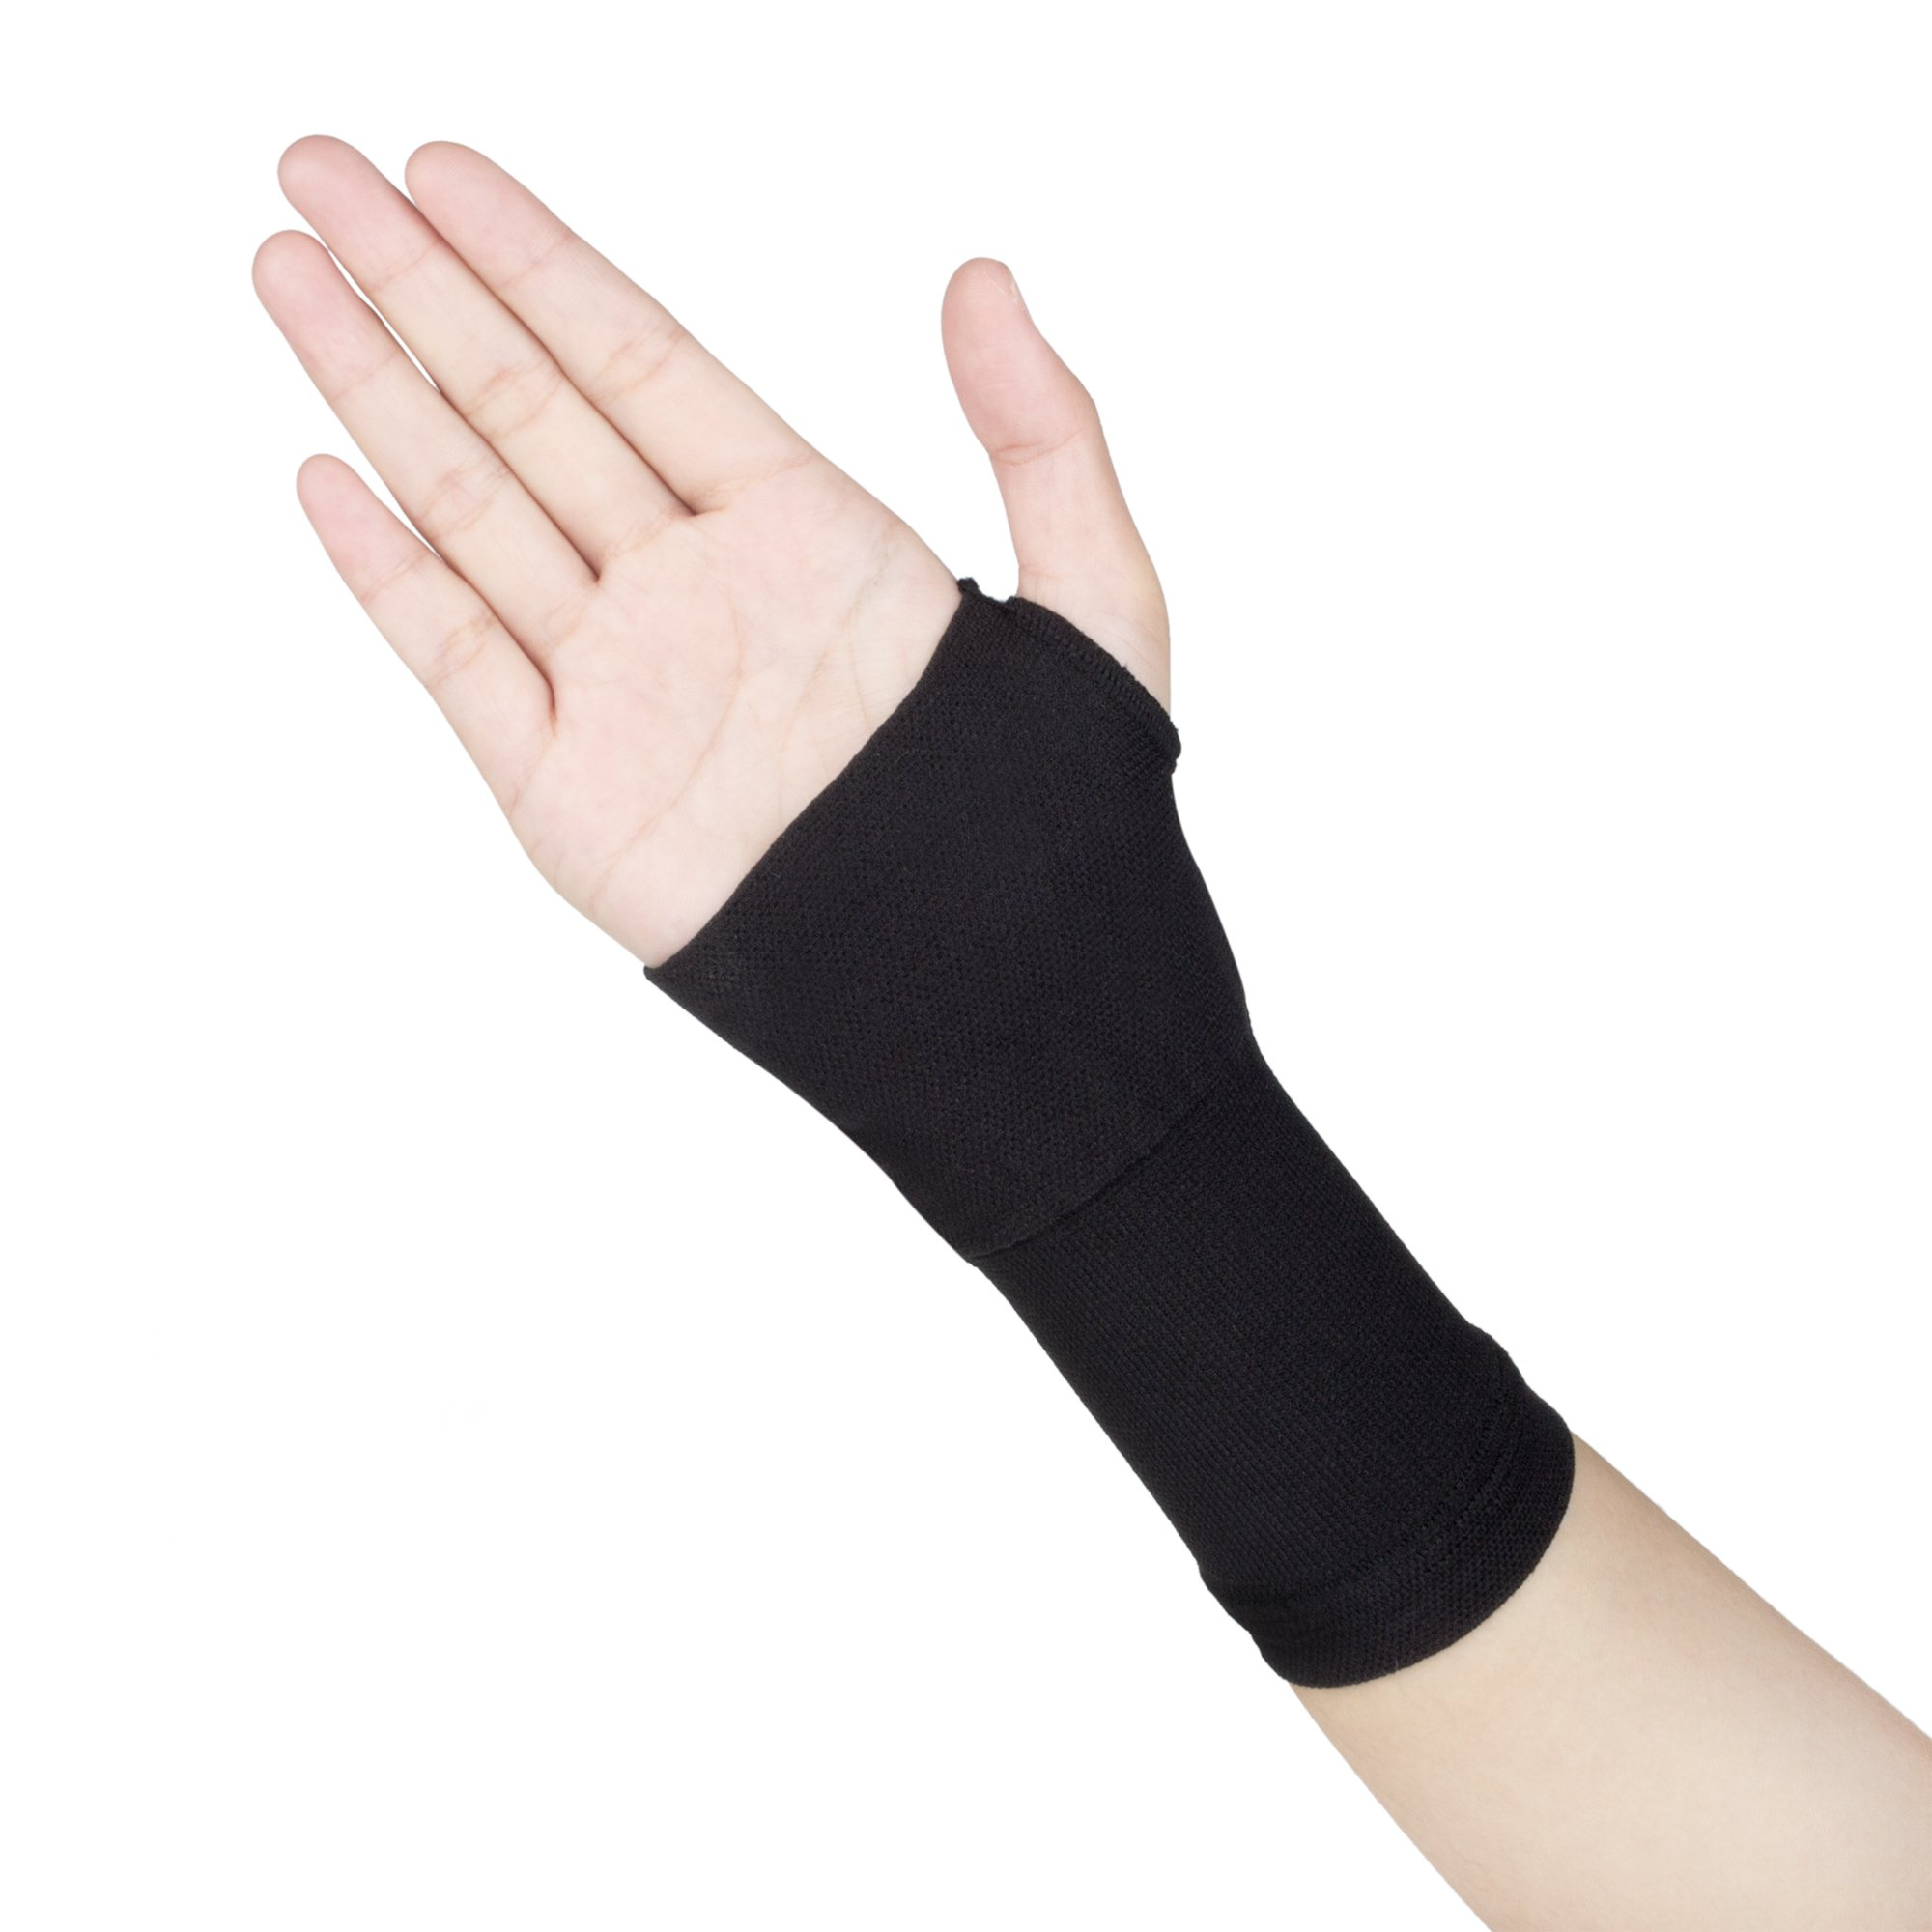 Fanssy 1 Pair 30-40mmHg Professional Slim Compression Medical Palm Wrist Band Carpal Tunnel Pain Relief Tendinitis Fitness Hand Supports Sleeve Wrap Brace